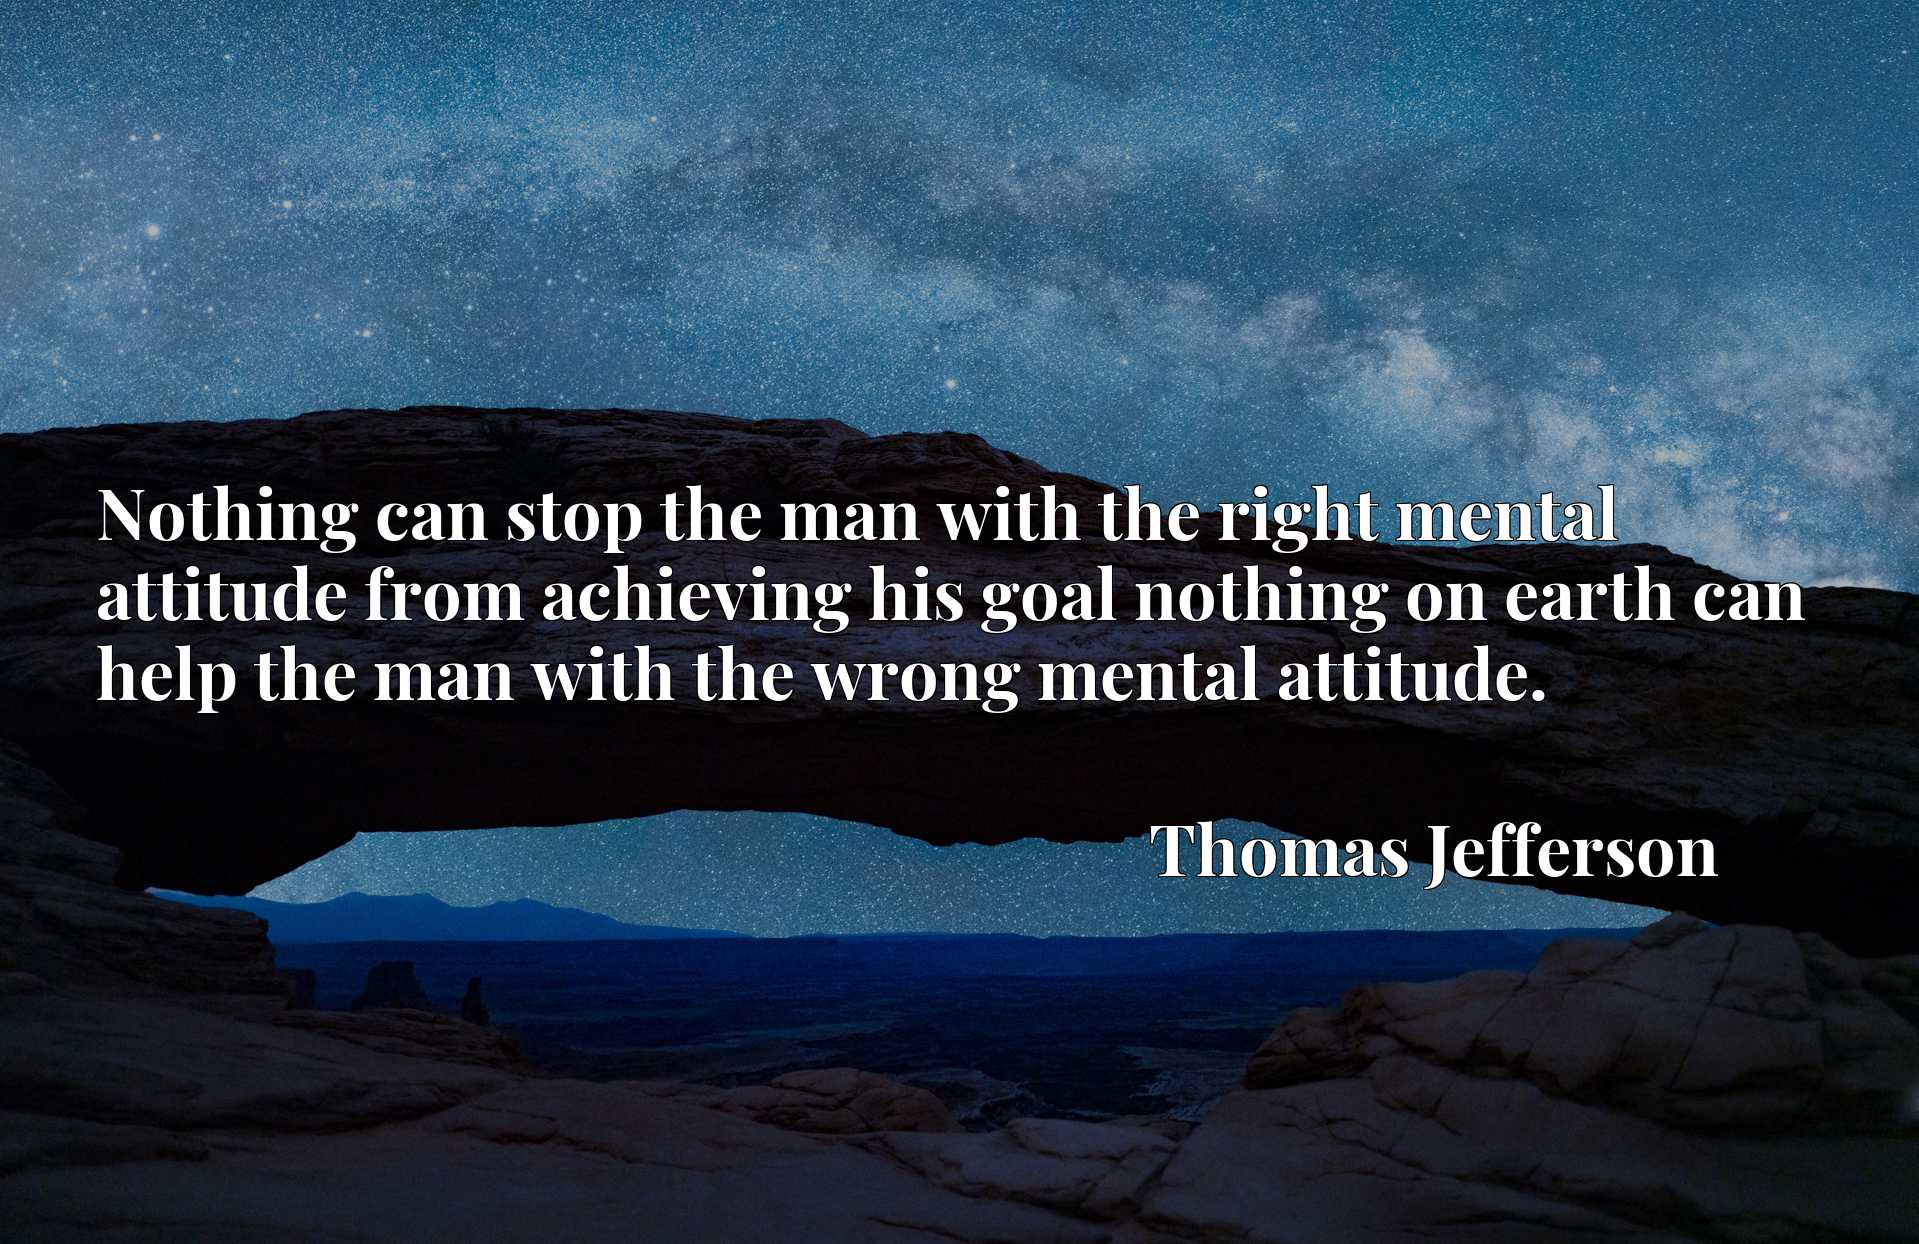 Nothing can stop the man with the right mental attitude from achieving his goal nothing on earth can help the man with the wrong mental attitude.